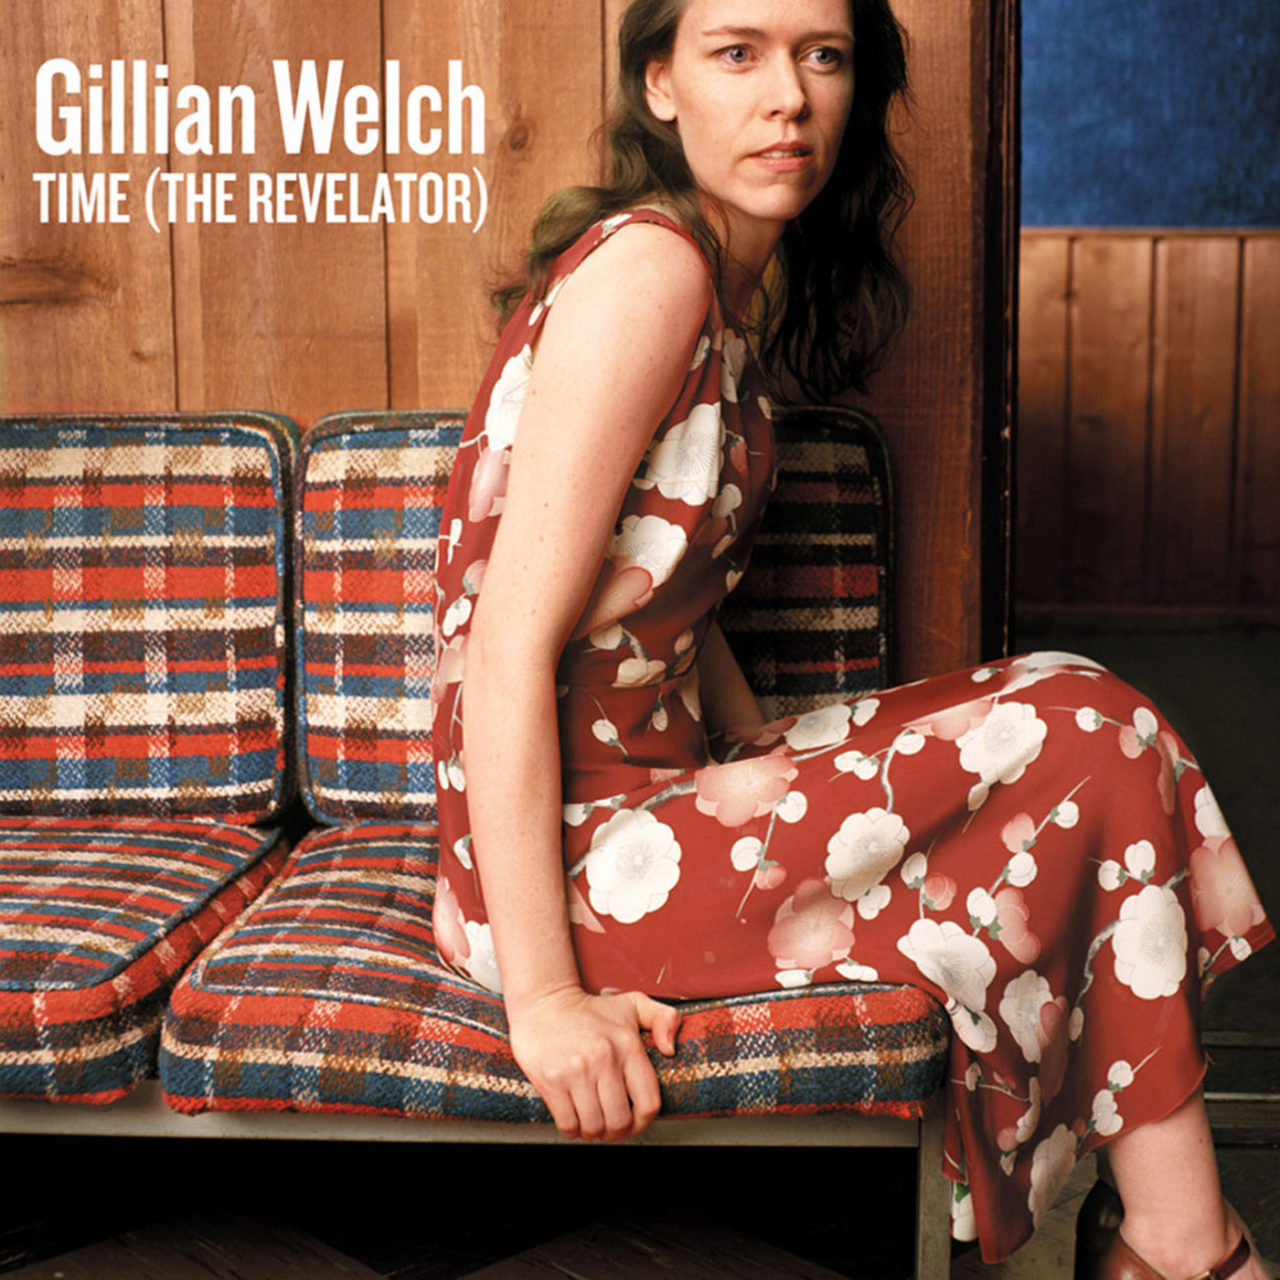 Gillian Welch Time